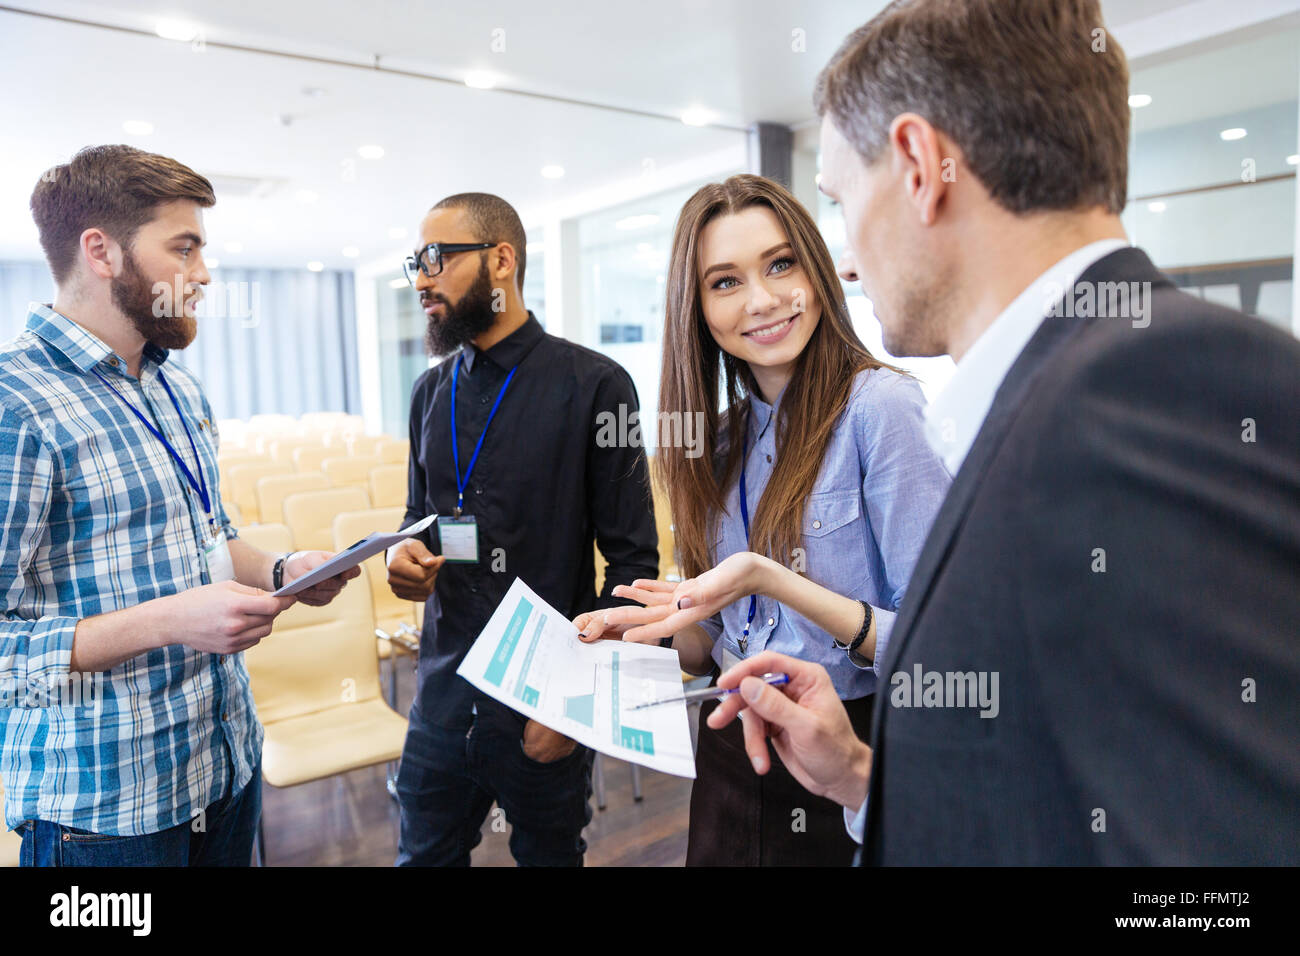 Group of young business people discussing financial report and  new project in conference hall Stock Photo